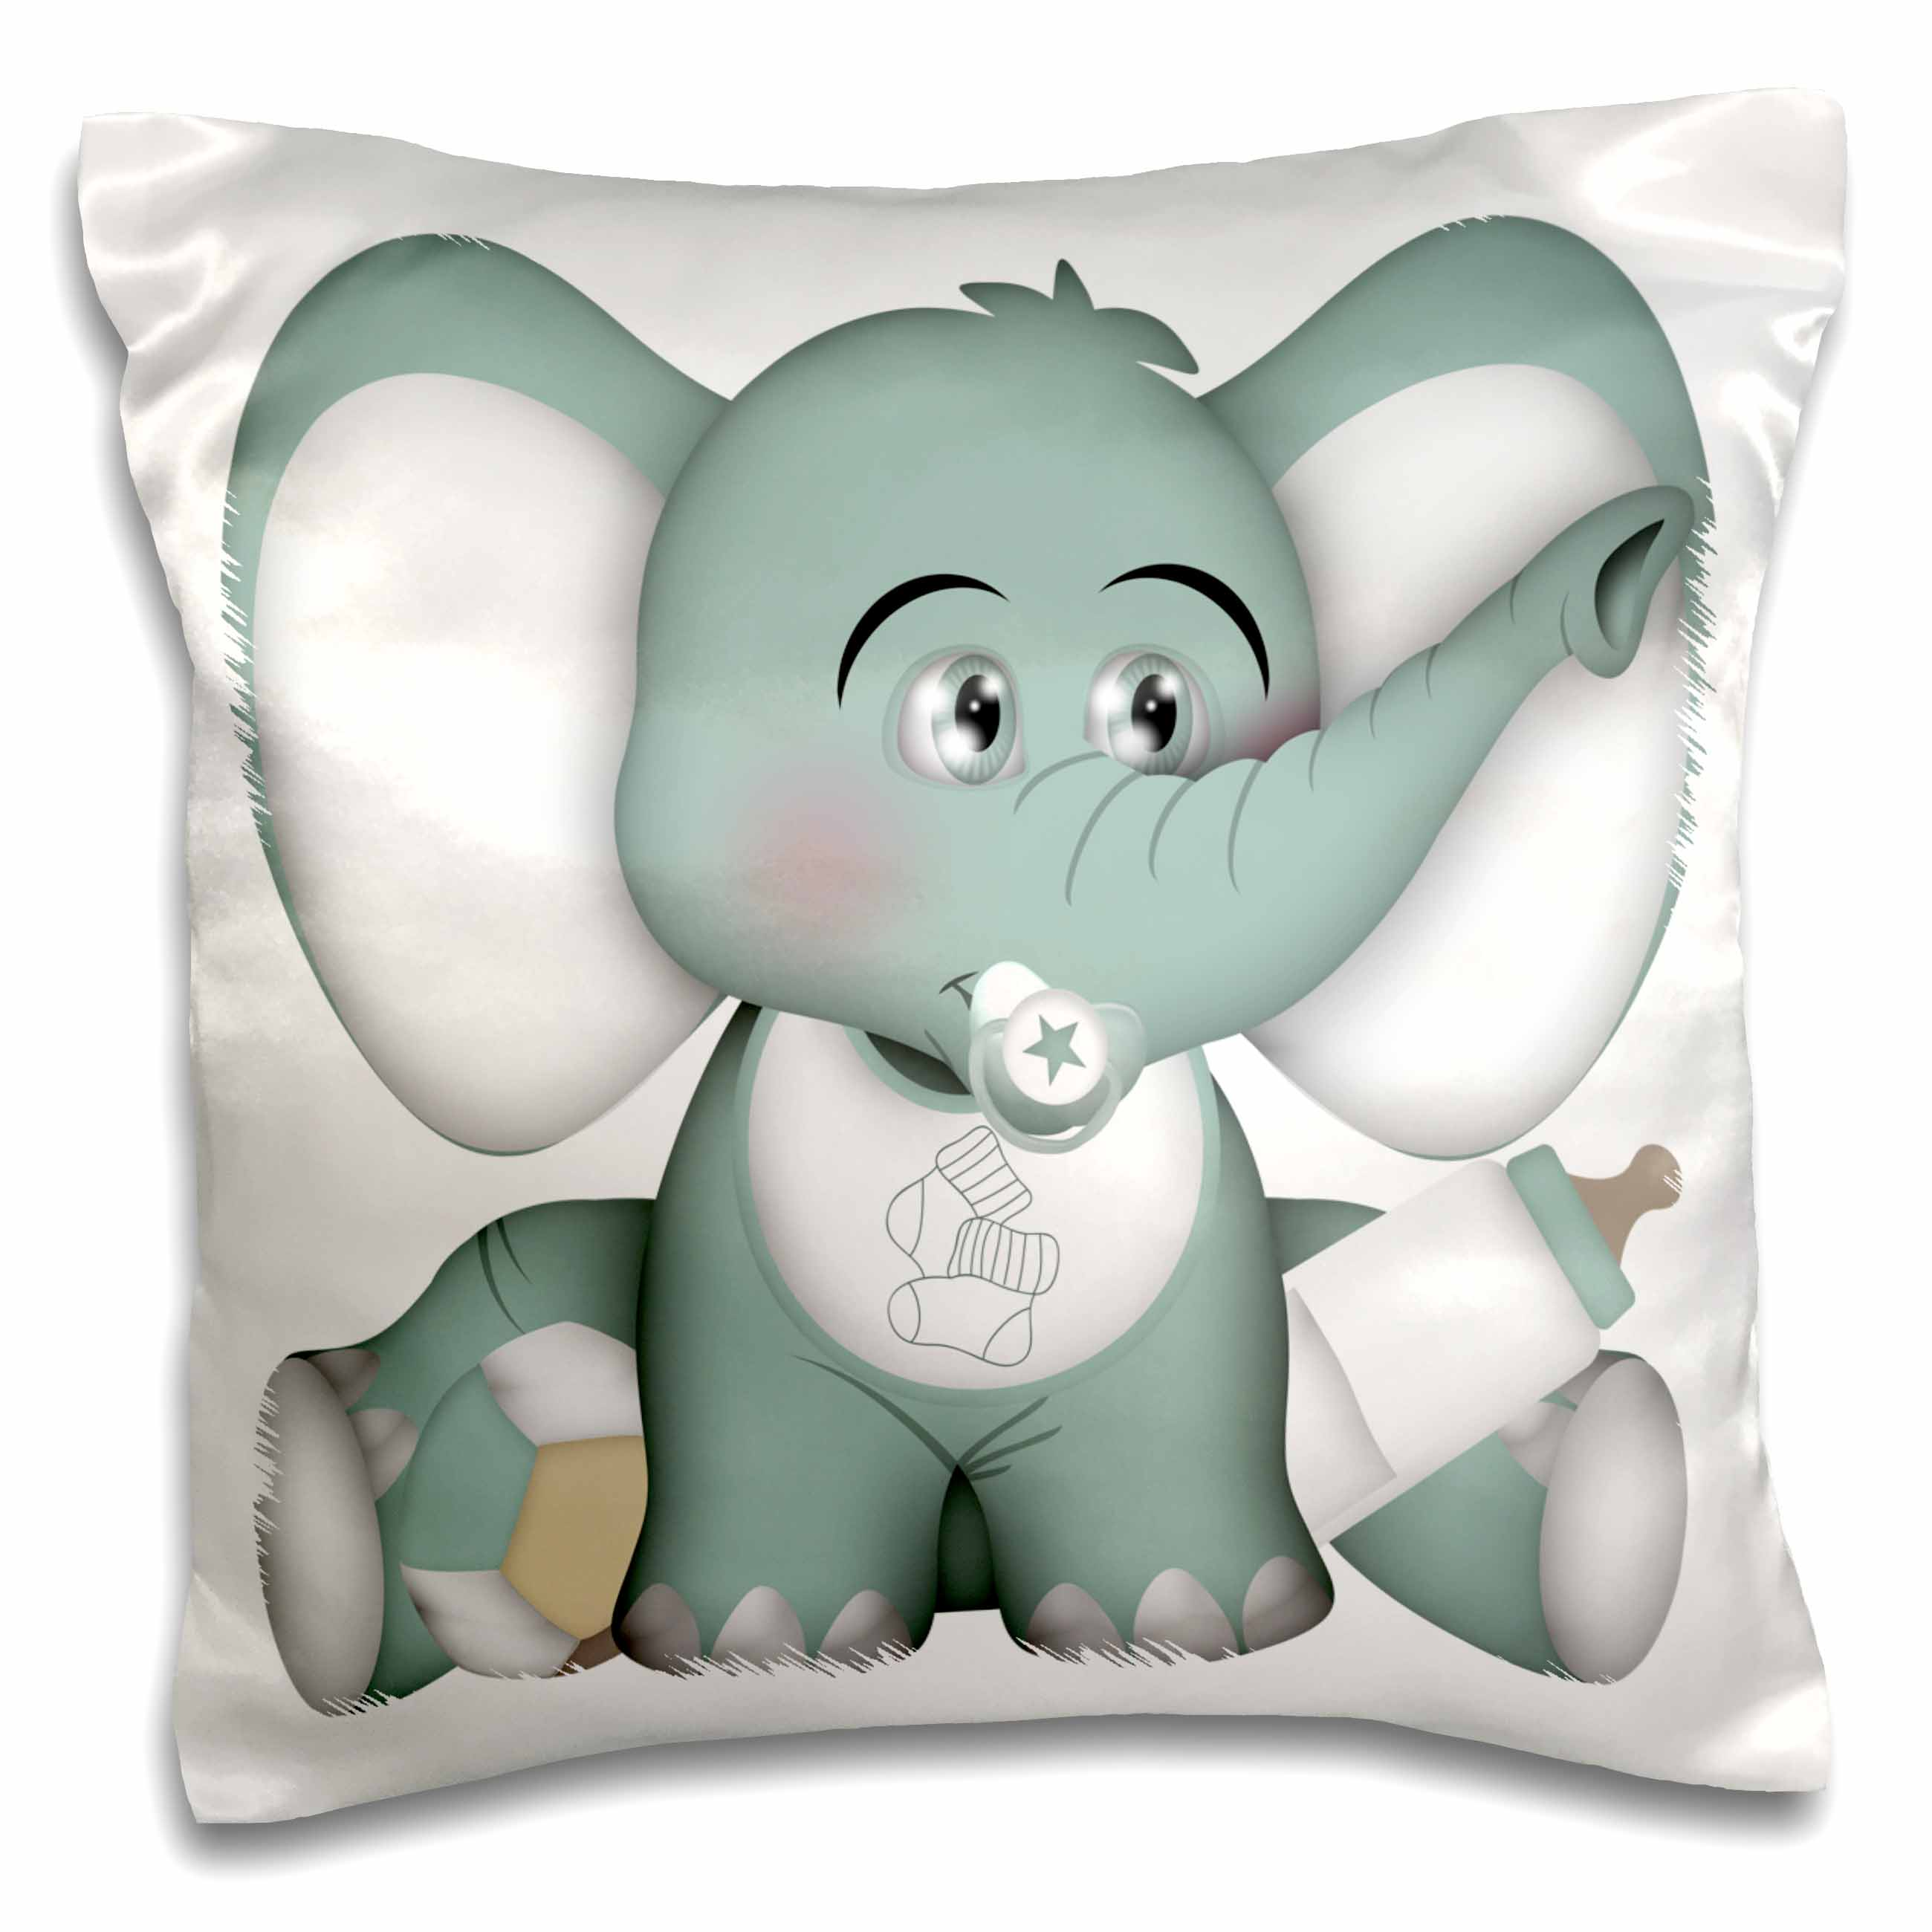 3dRose Cute Teal and White Baby Elephant With Pacifier and Bib Illustration, Pillow Case, 16 by 16-inch